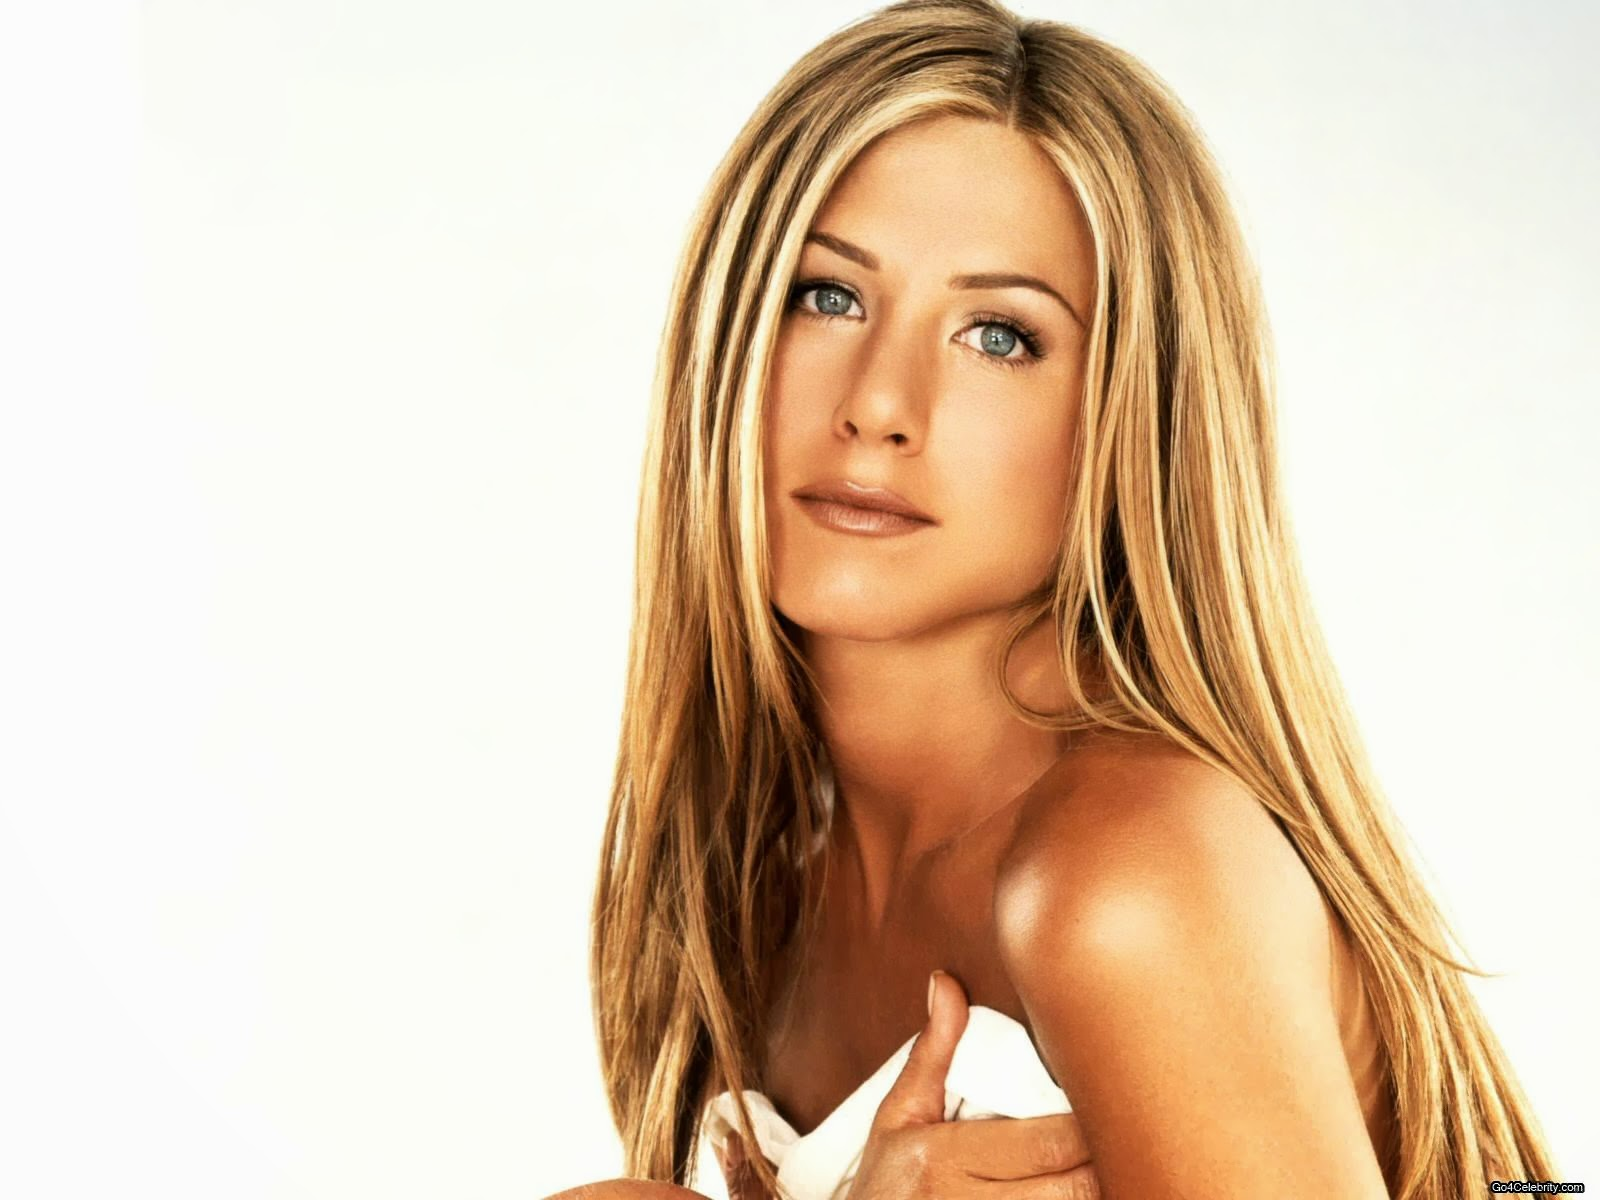 Jennifer Aniston: The Kids Captions: Great Shift Game